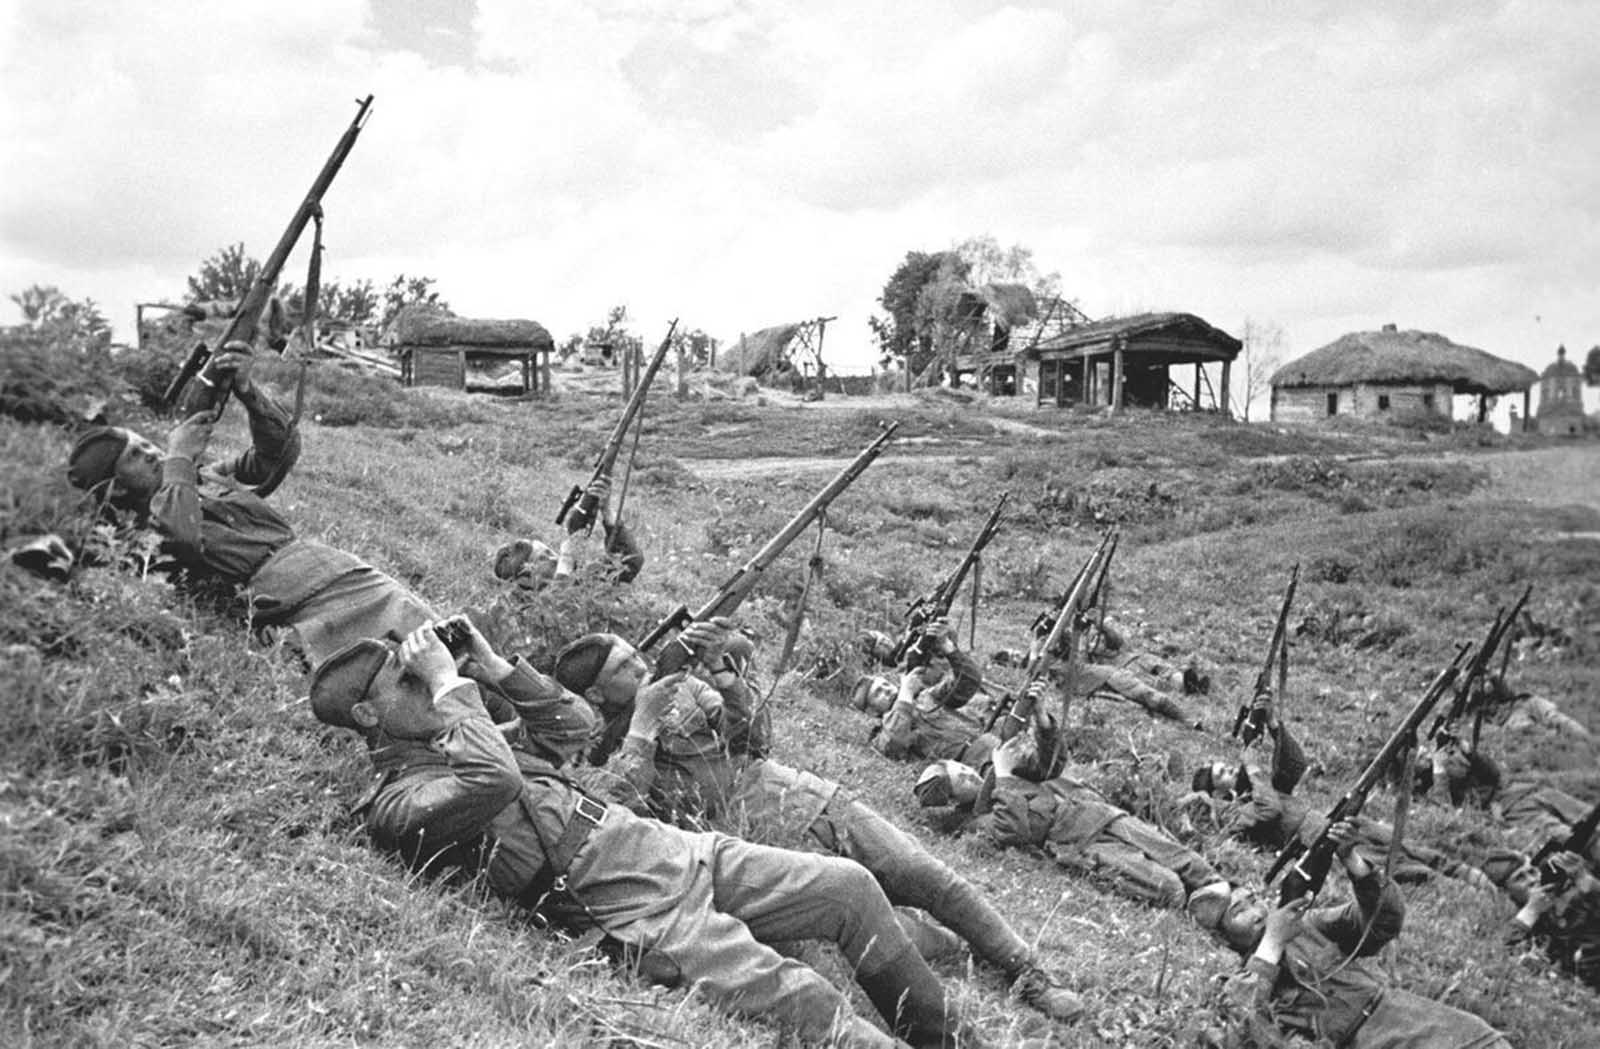 Soviet soldiers, on their backs, launch a volley of bullets at enemy aircraft in June of 1943.